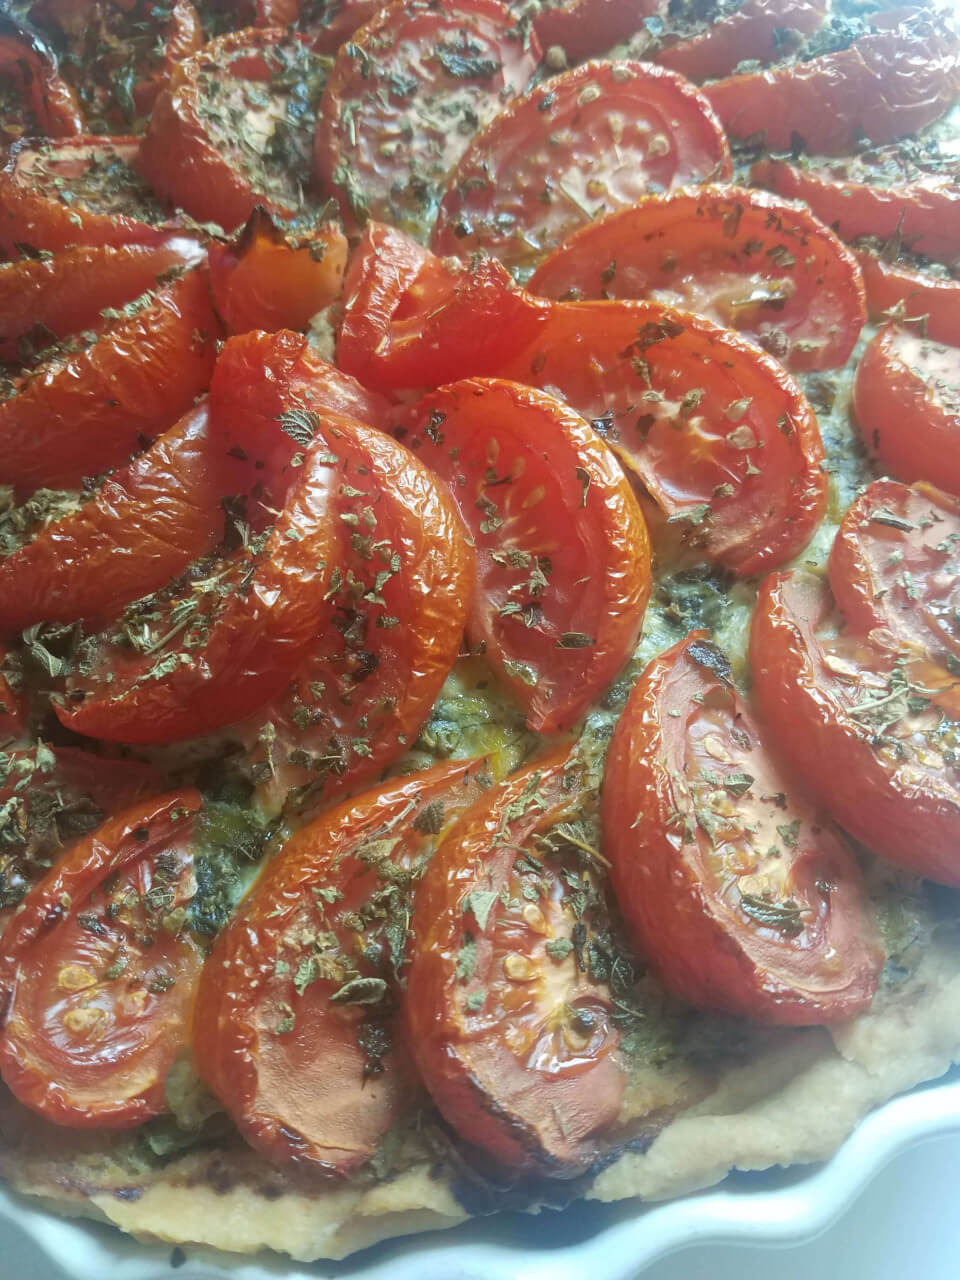 Finished leek and dill quiche topped with roasted tomatoes and oregano.